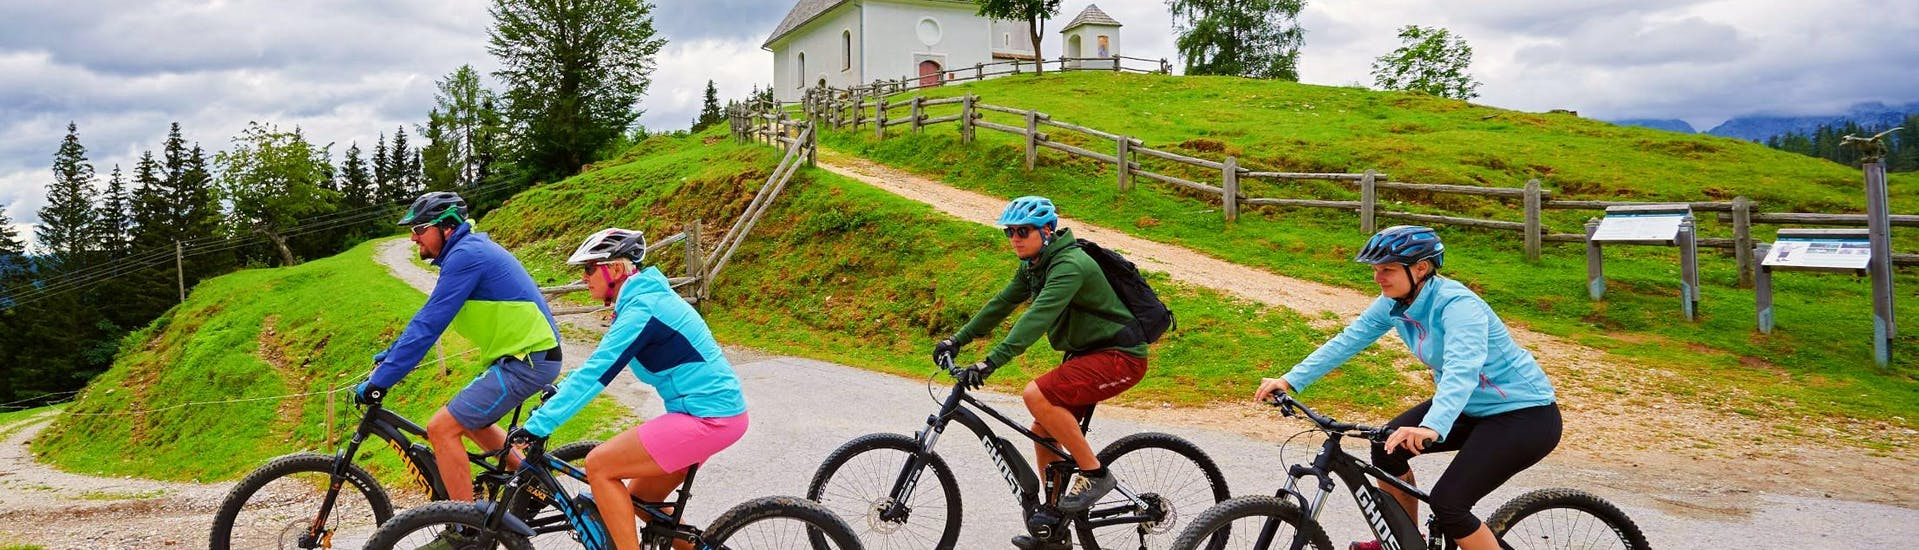 A group of friends is enjoying the scenery during a Relaxed Guided Bike Tour in Upper Savinja Valley with Funpark Menina.